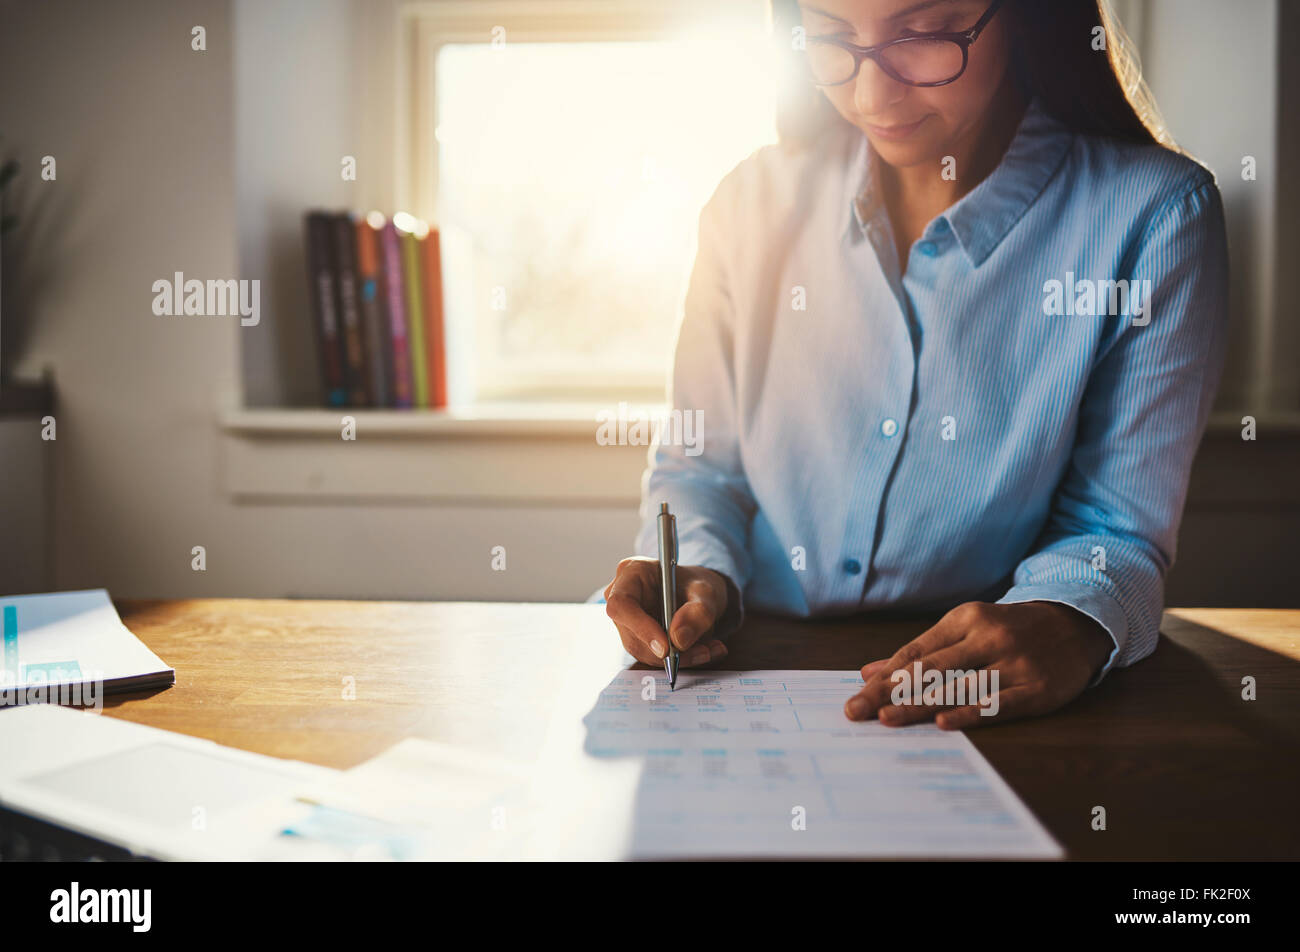 Single woman in blue blouse working at desk on paperwork in home office with sunlight over her shoulder through - Stock Image